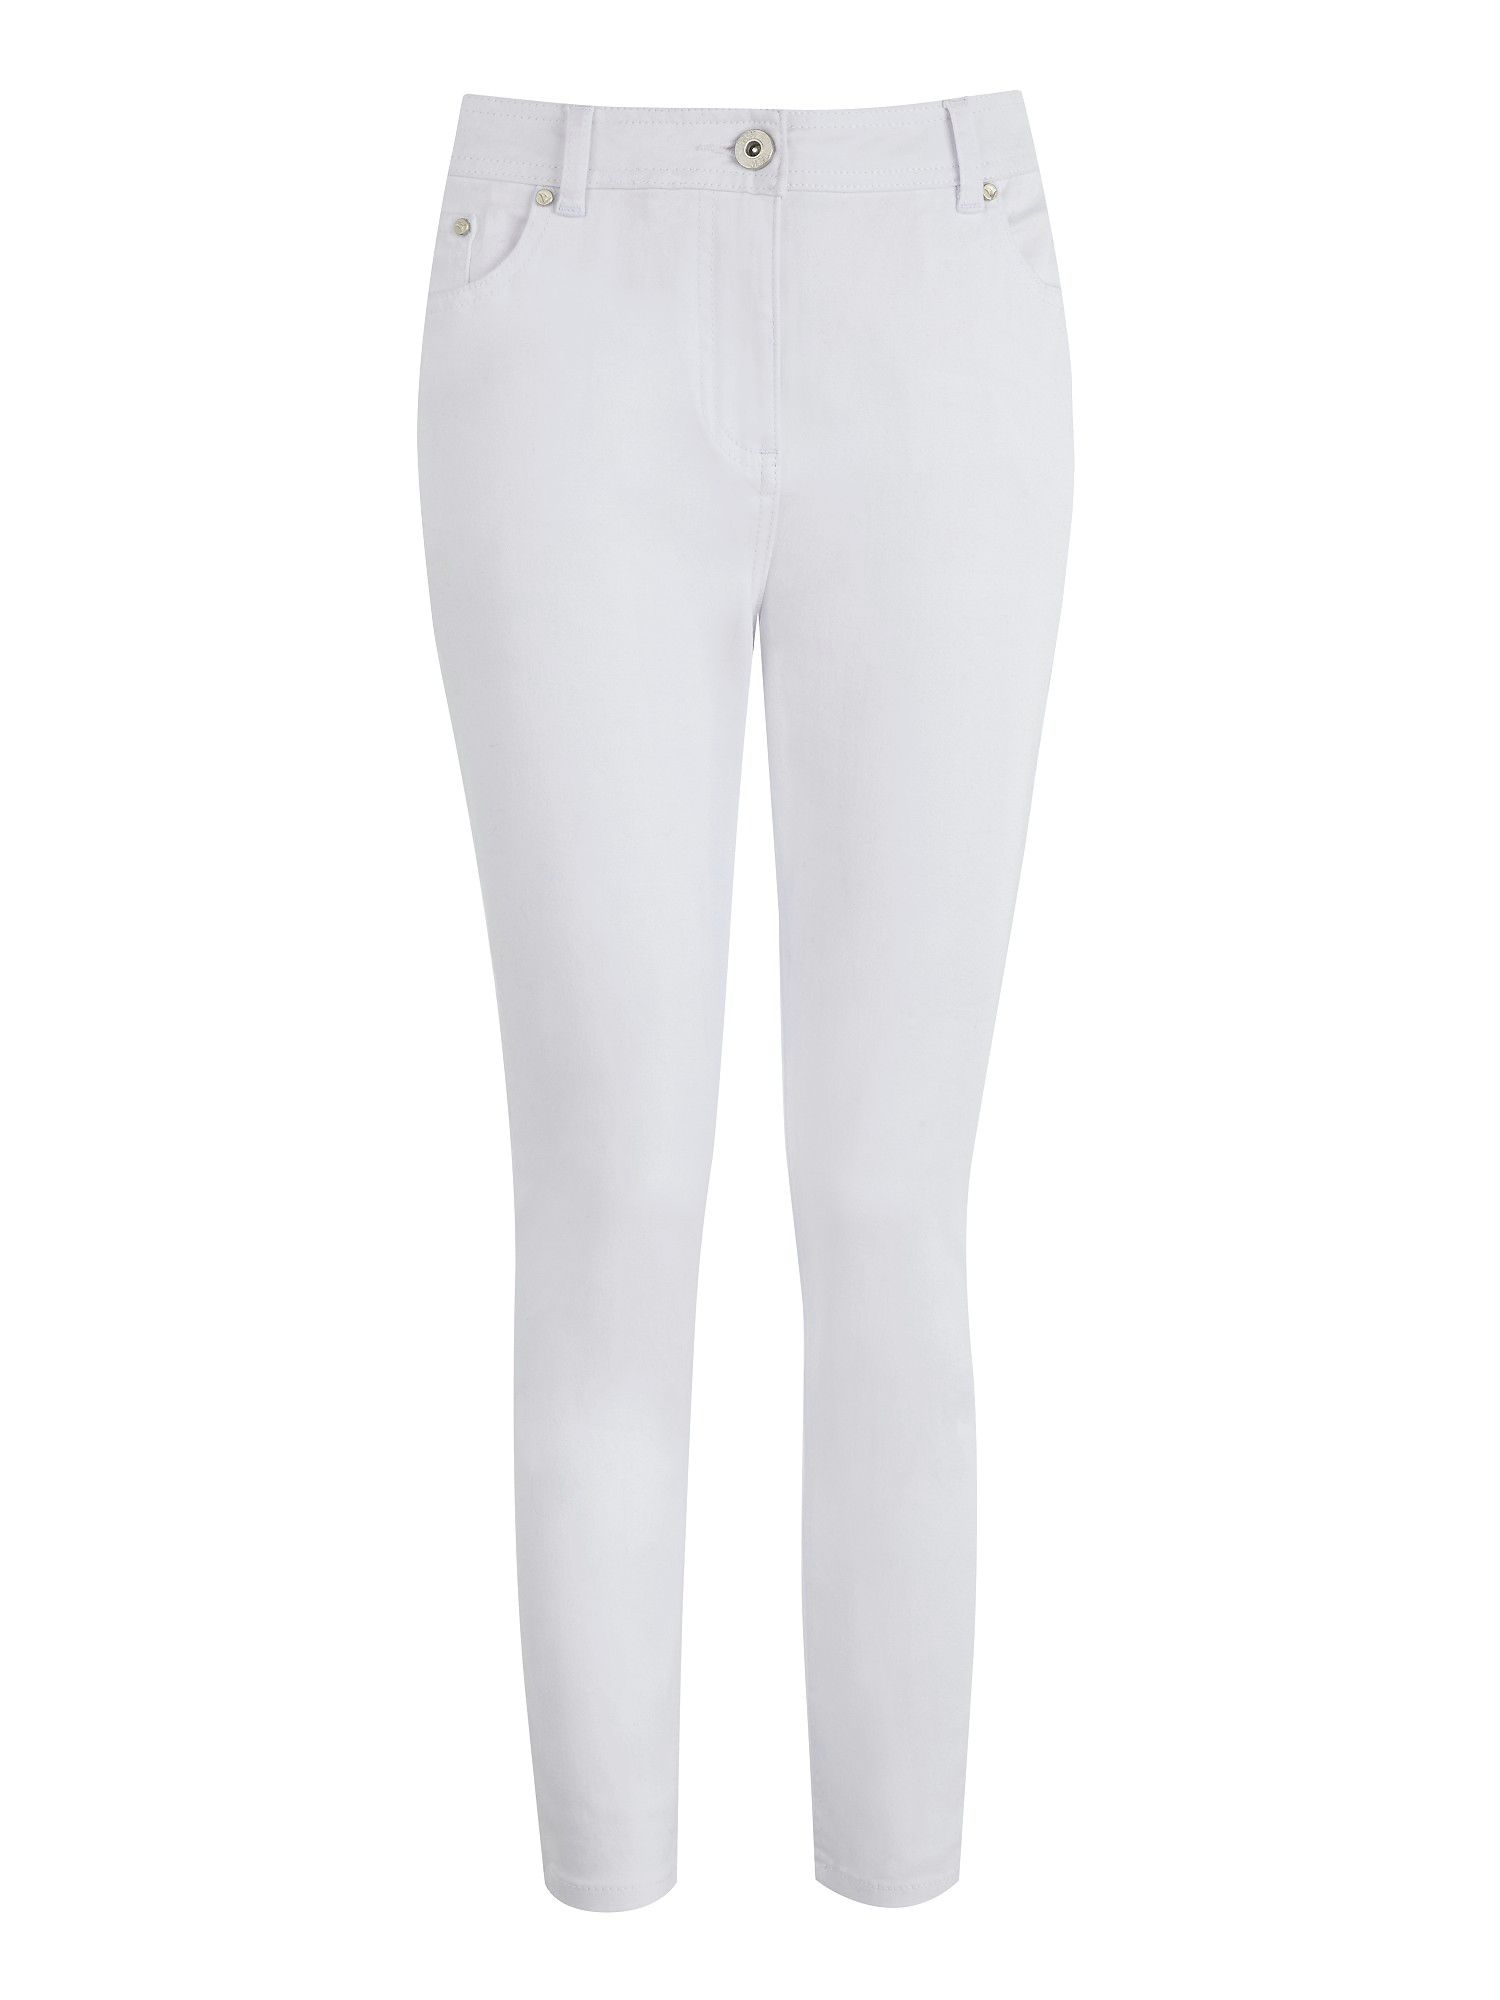 White twill capri trousers long